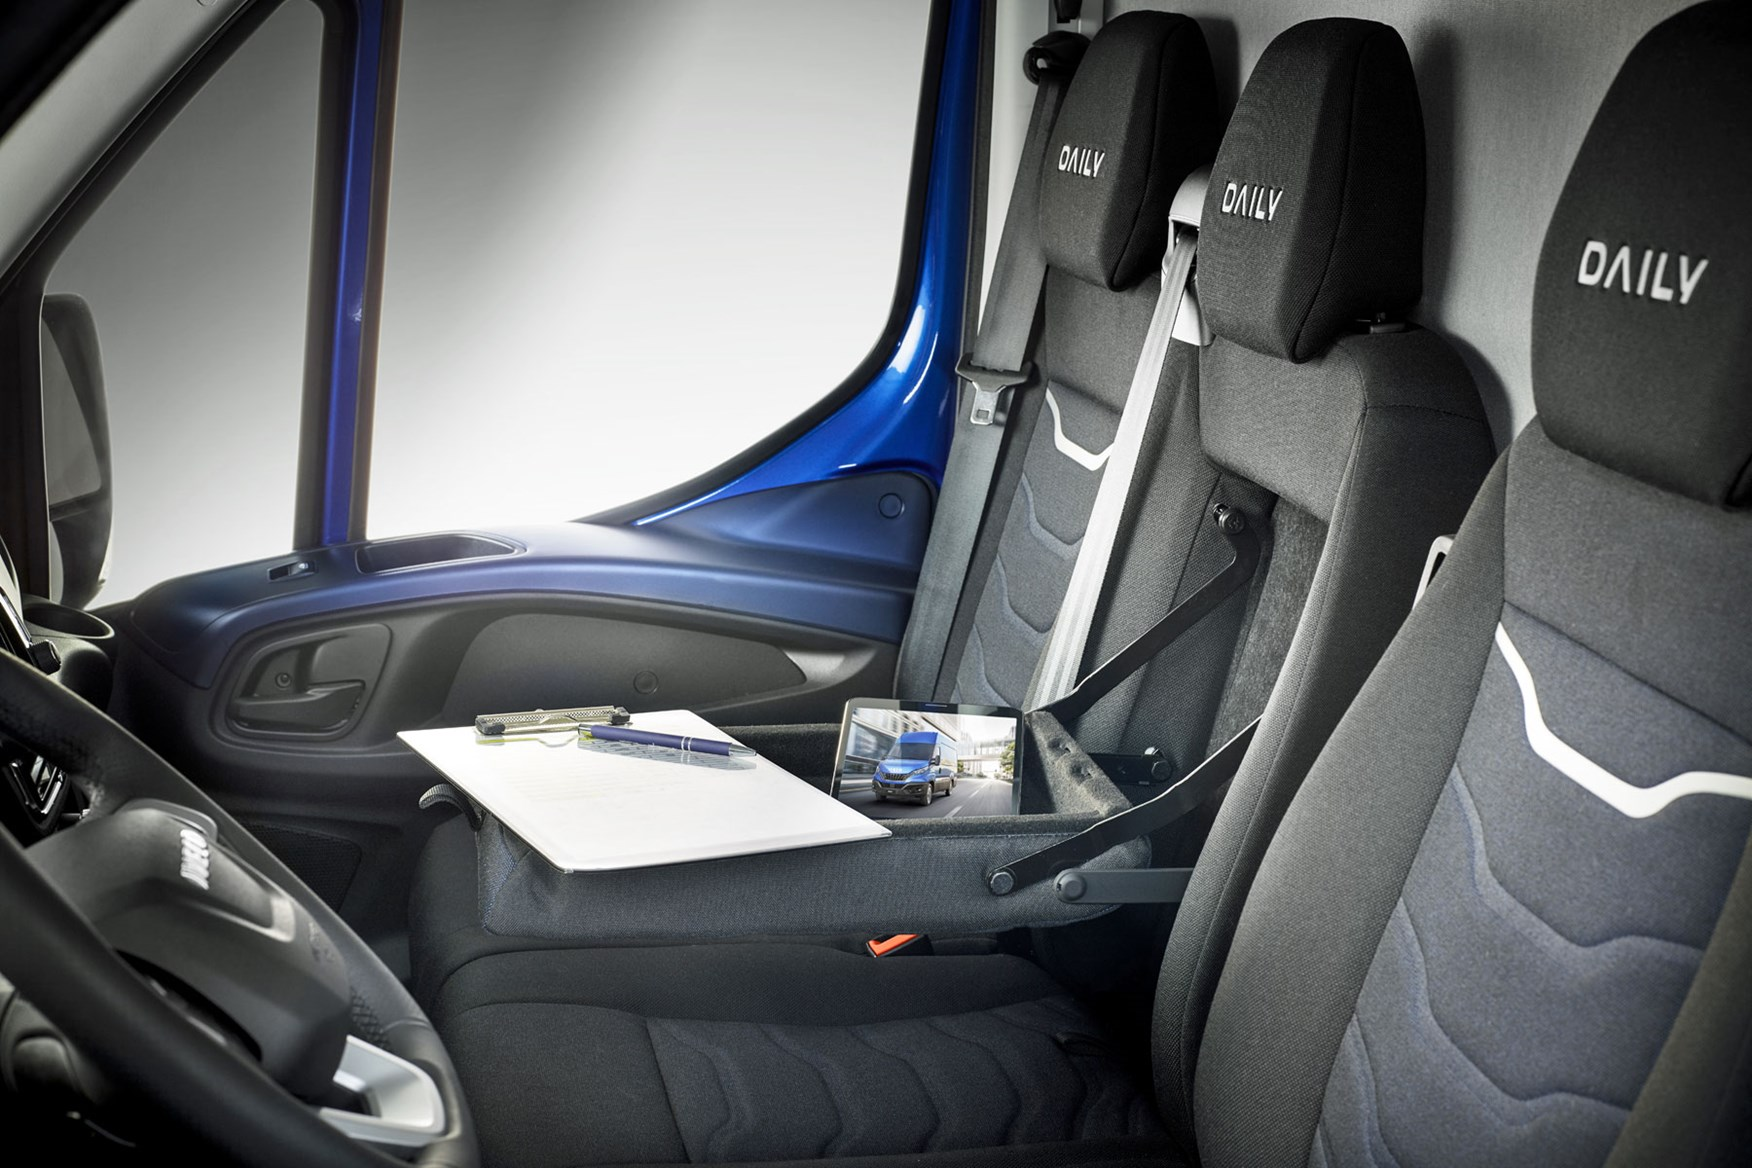 Iveco Daily 2019 review - seats and fold down desk